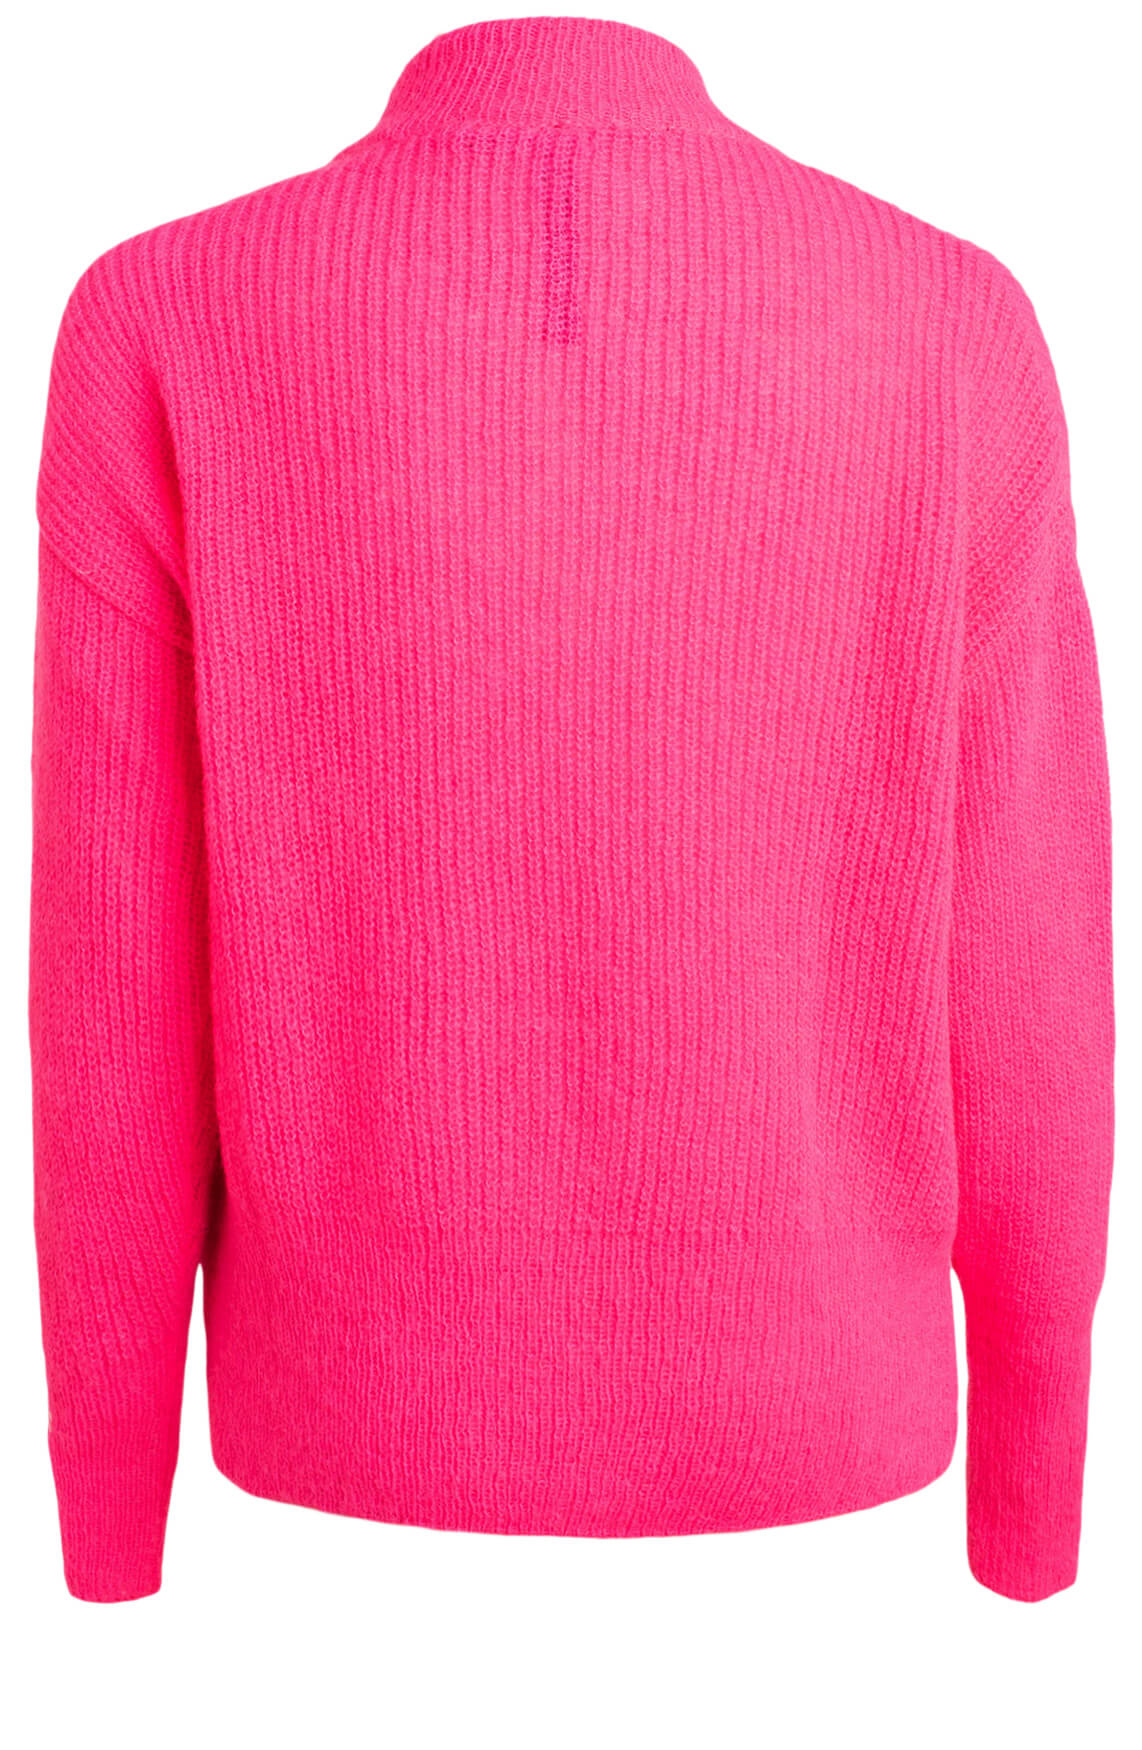 10 Days Dames Soft knit sweater roze